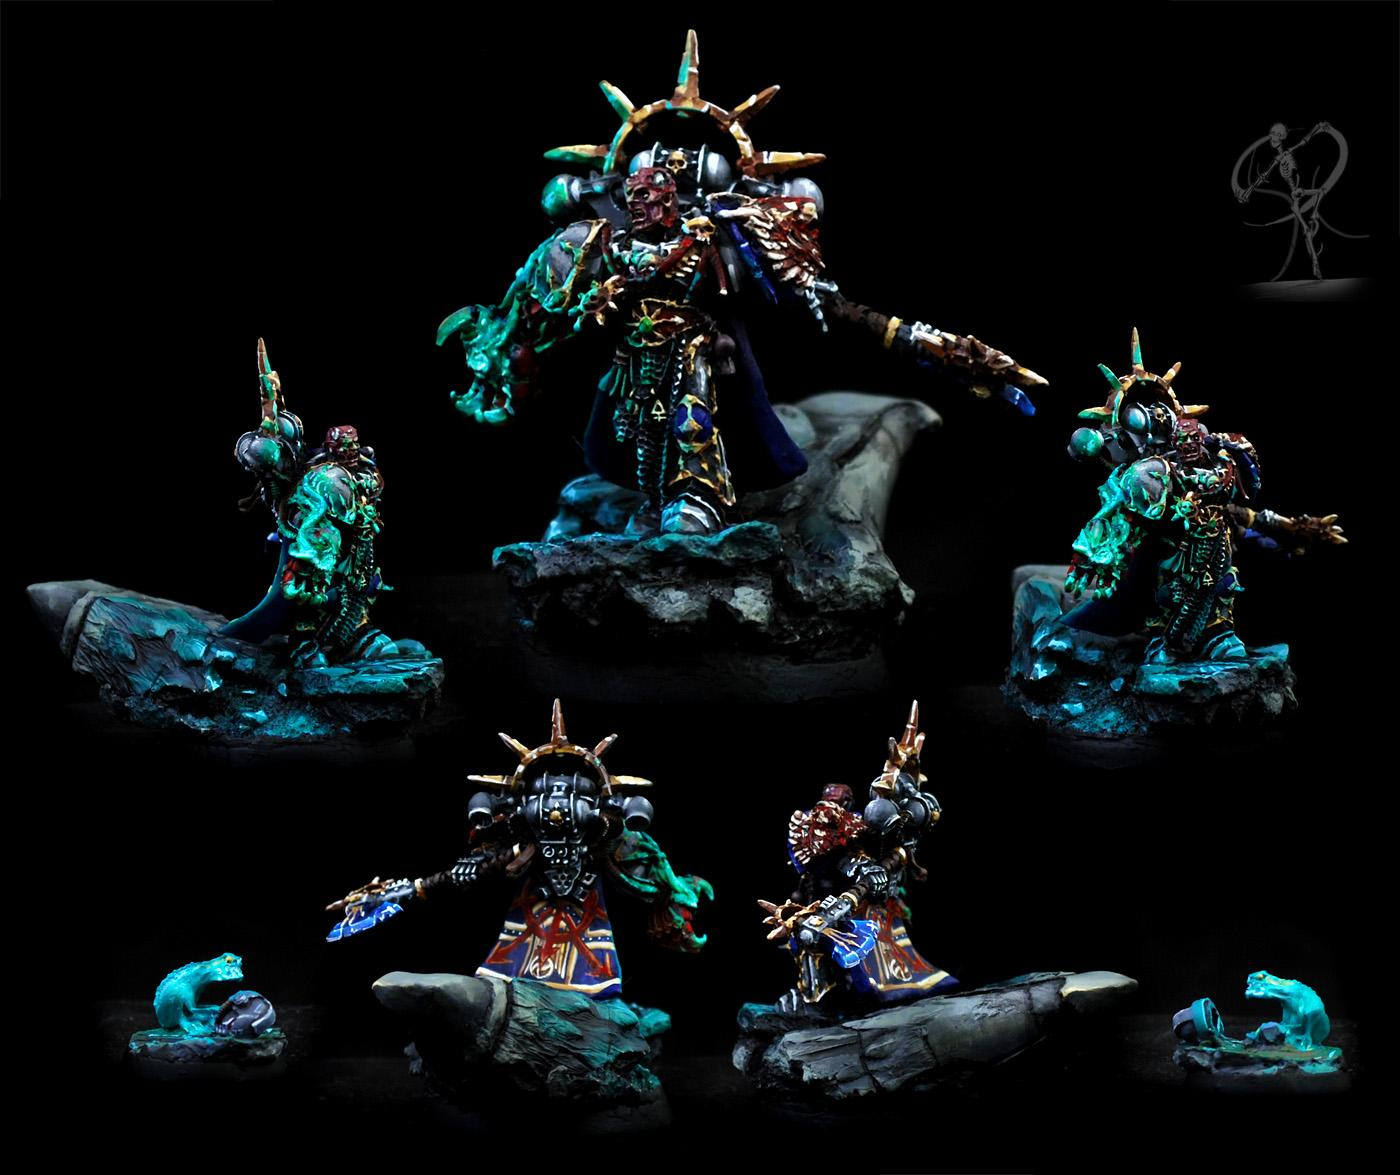 Astral Claws, Chaos, Chaos Space Marines, Daemons, Freehand, Non-Metallic Metal, Object Source Lighting, Psykers, Red Corsairs, Space Marines, Warhammer 40,000